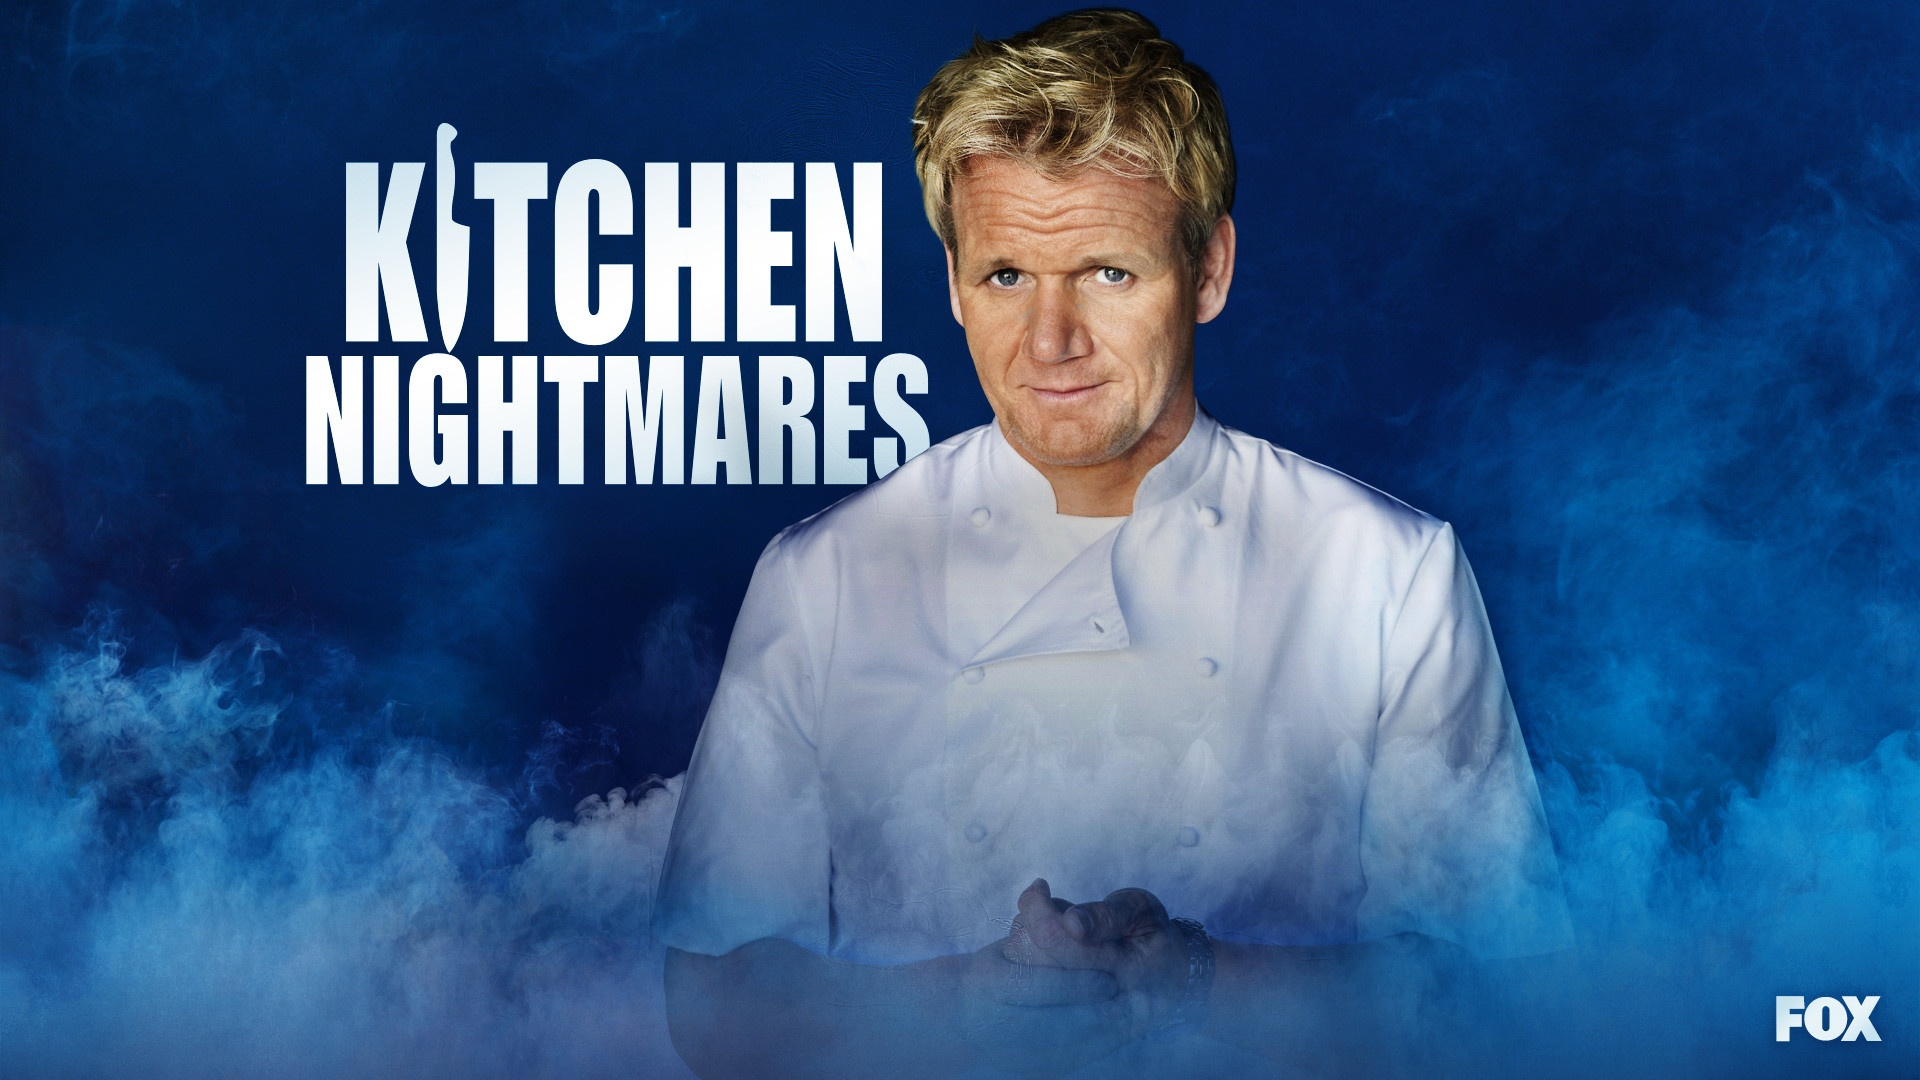 Gordon Ramsay Tv Show Kitchen Nightmares